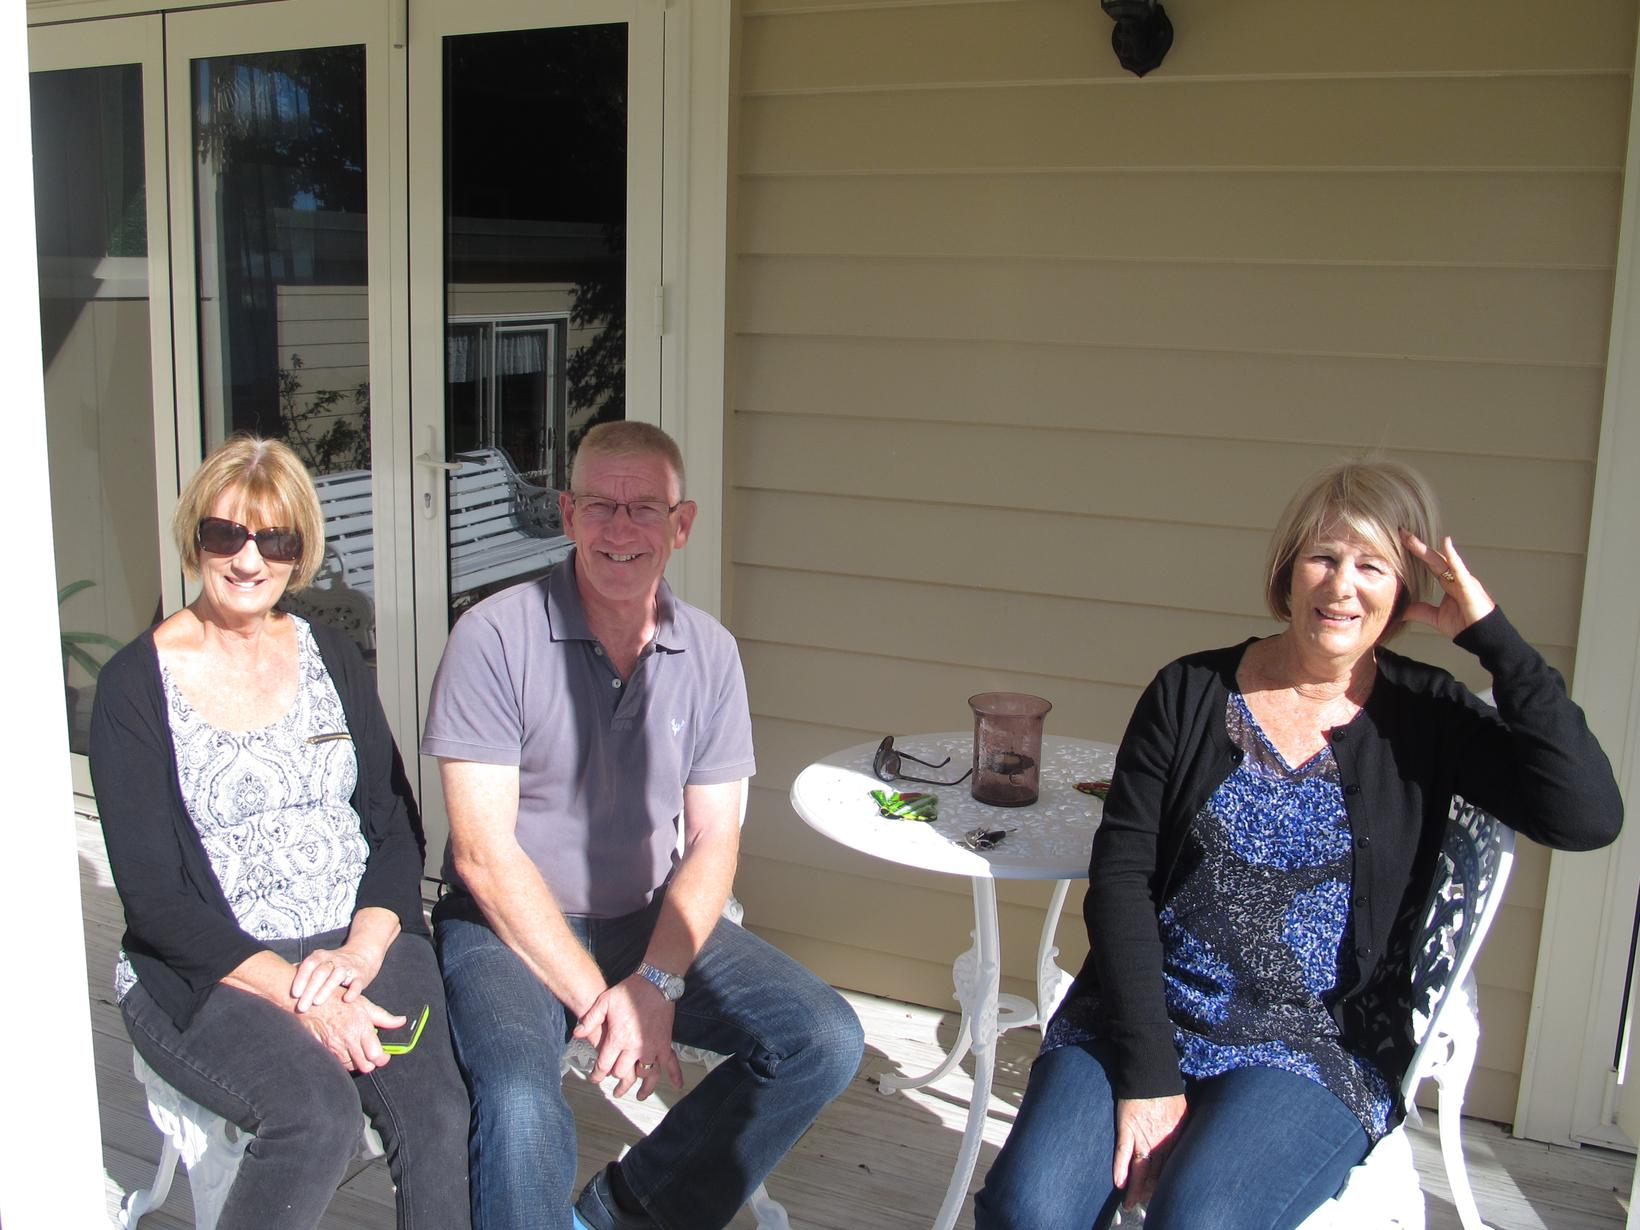 Lis & Keith from Auckland, New Zealand